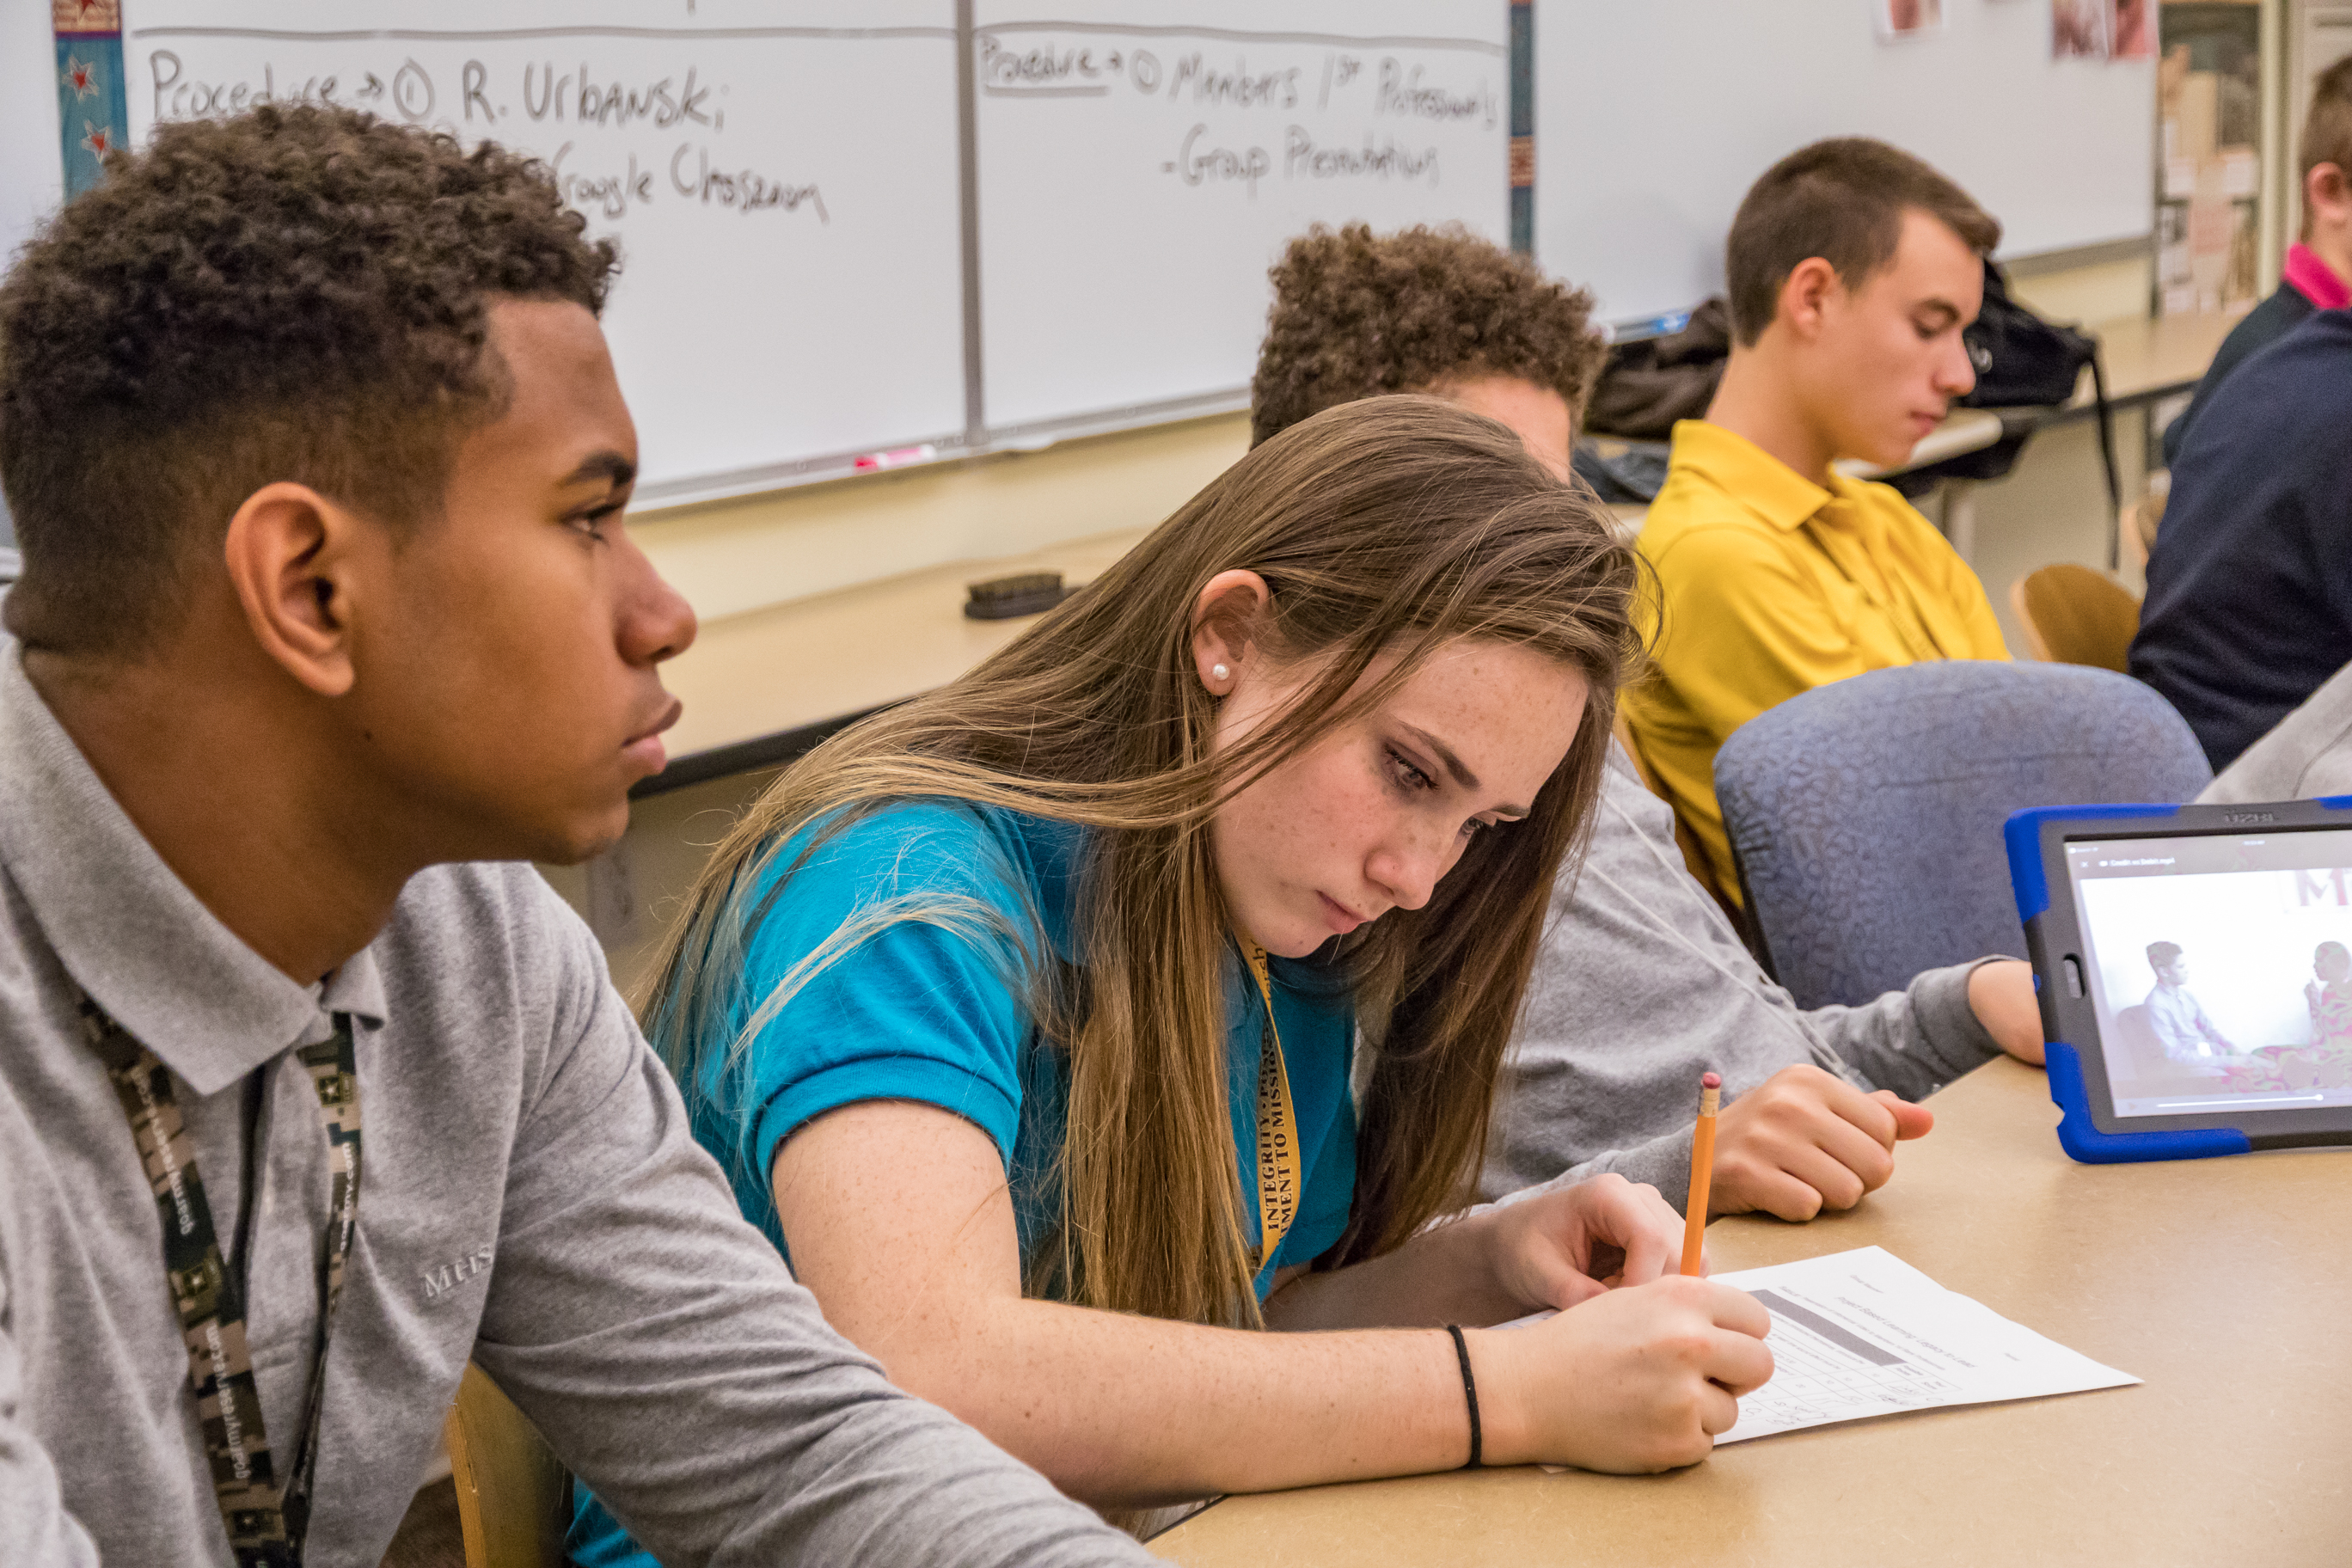 Milton Hershey School students recently learned about financial literacy through a project-based learning activity in the school's Legacy to Lead course.